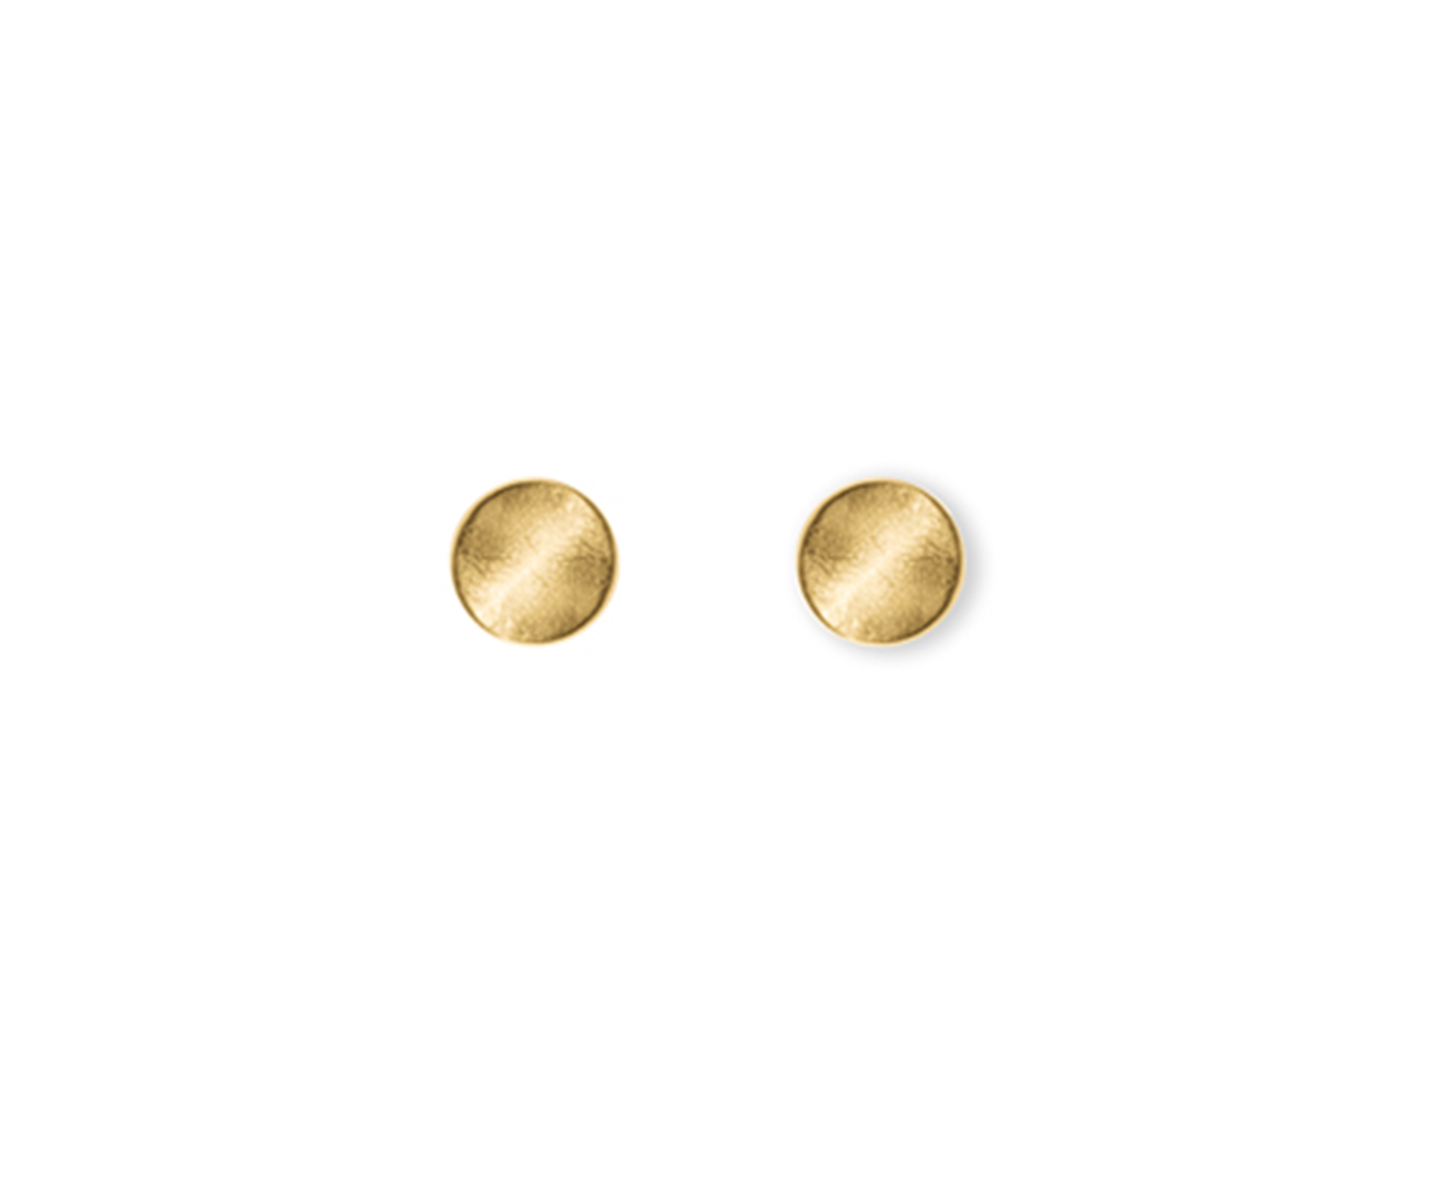 Gold earring with false dilation